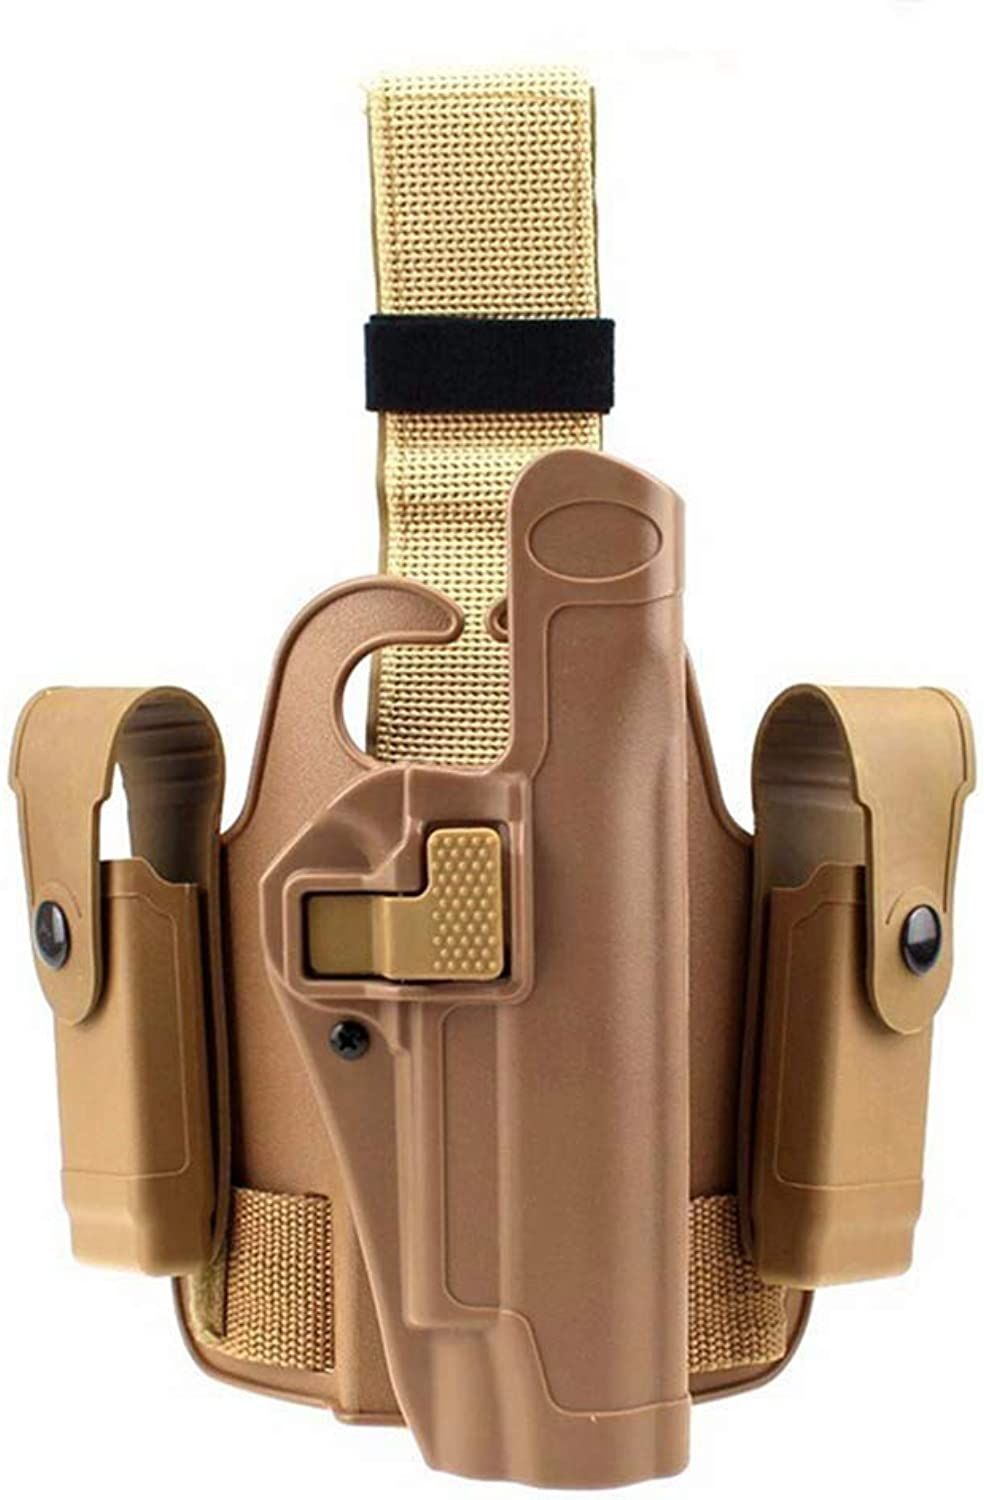 Quanlei Tactical Level 2 Duty Holster Drop Leg Holster Bag Thigh Right Leg Holster with Magazine Torch Pouch for Colt 1911 M1911